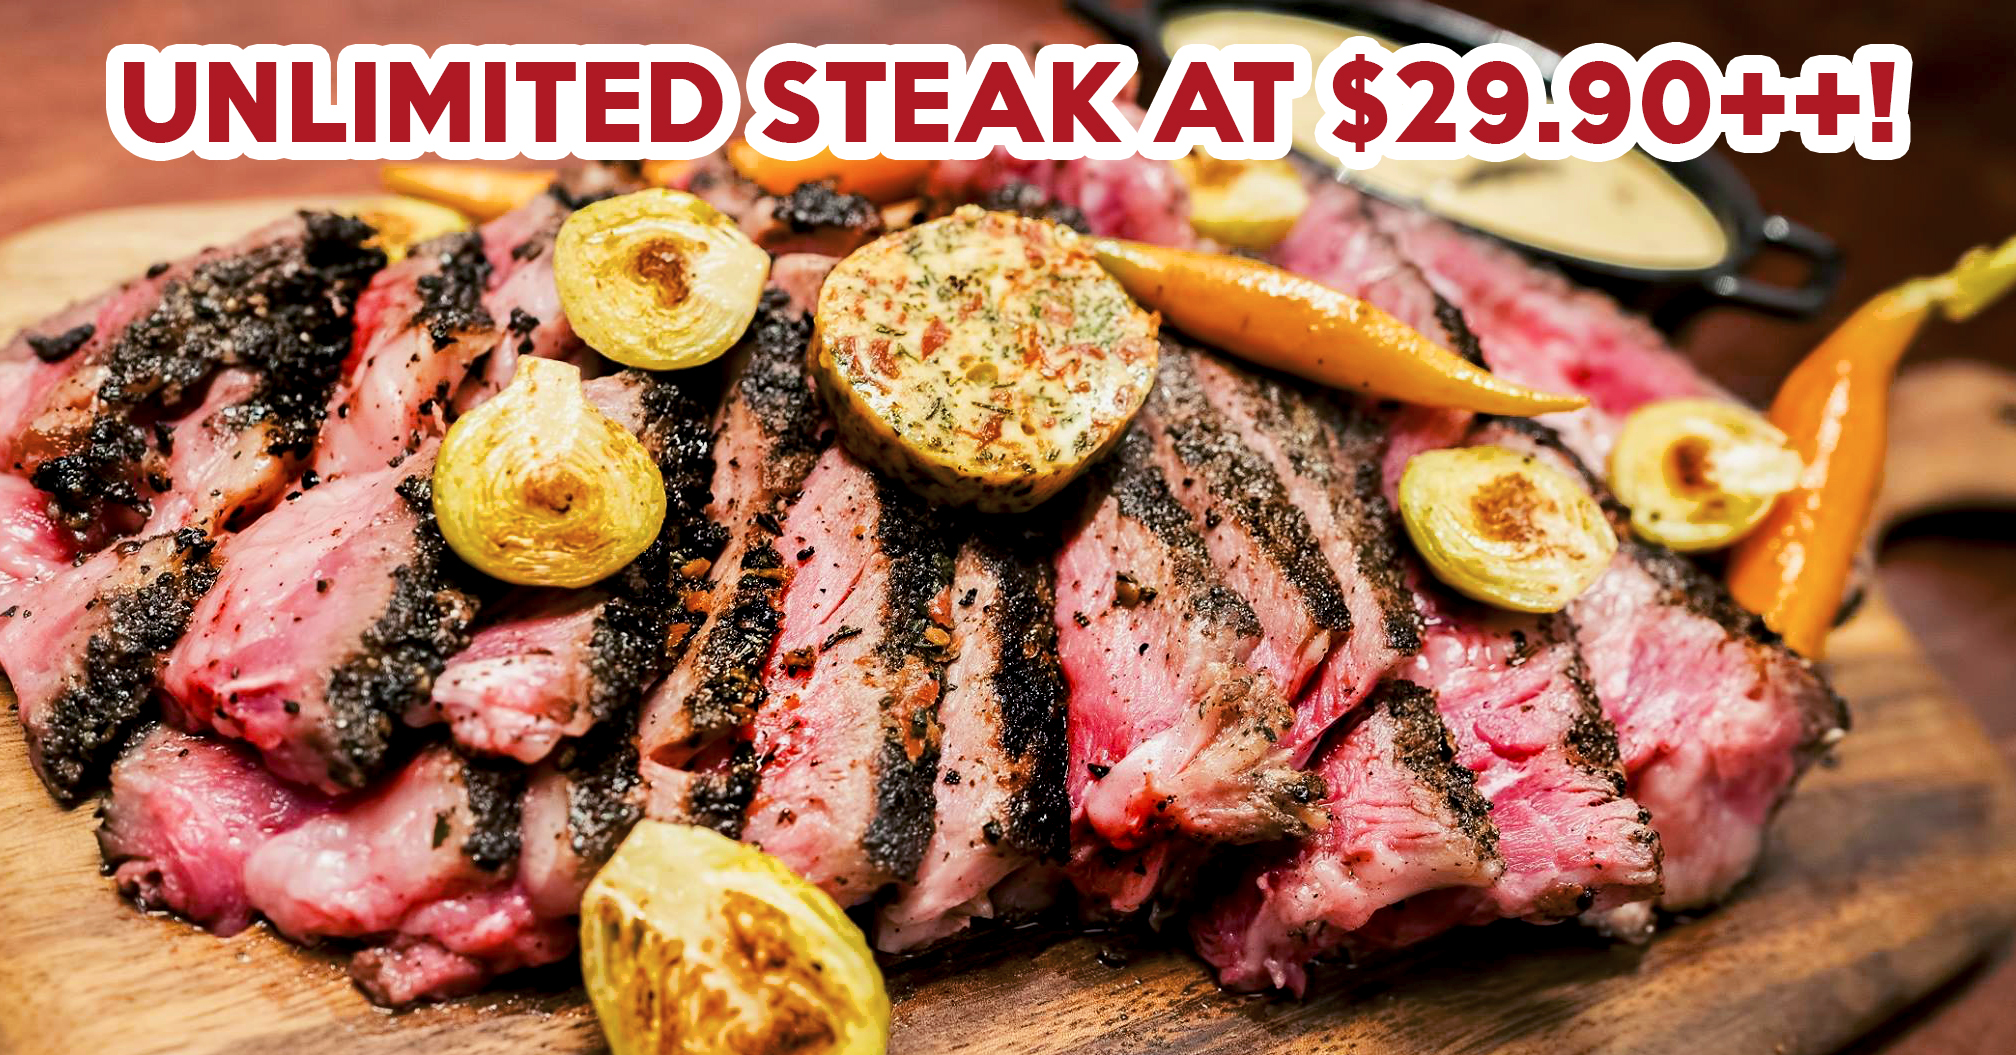 Weekend Steak Buffet At The Armoury Craft Beer Bar For $29.90++